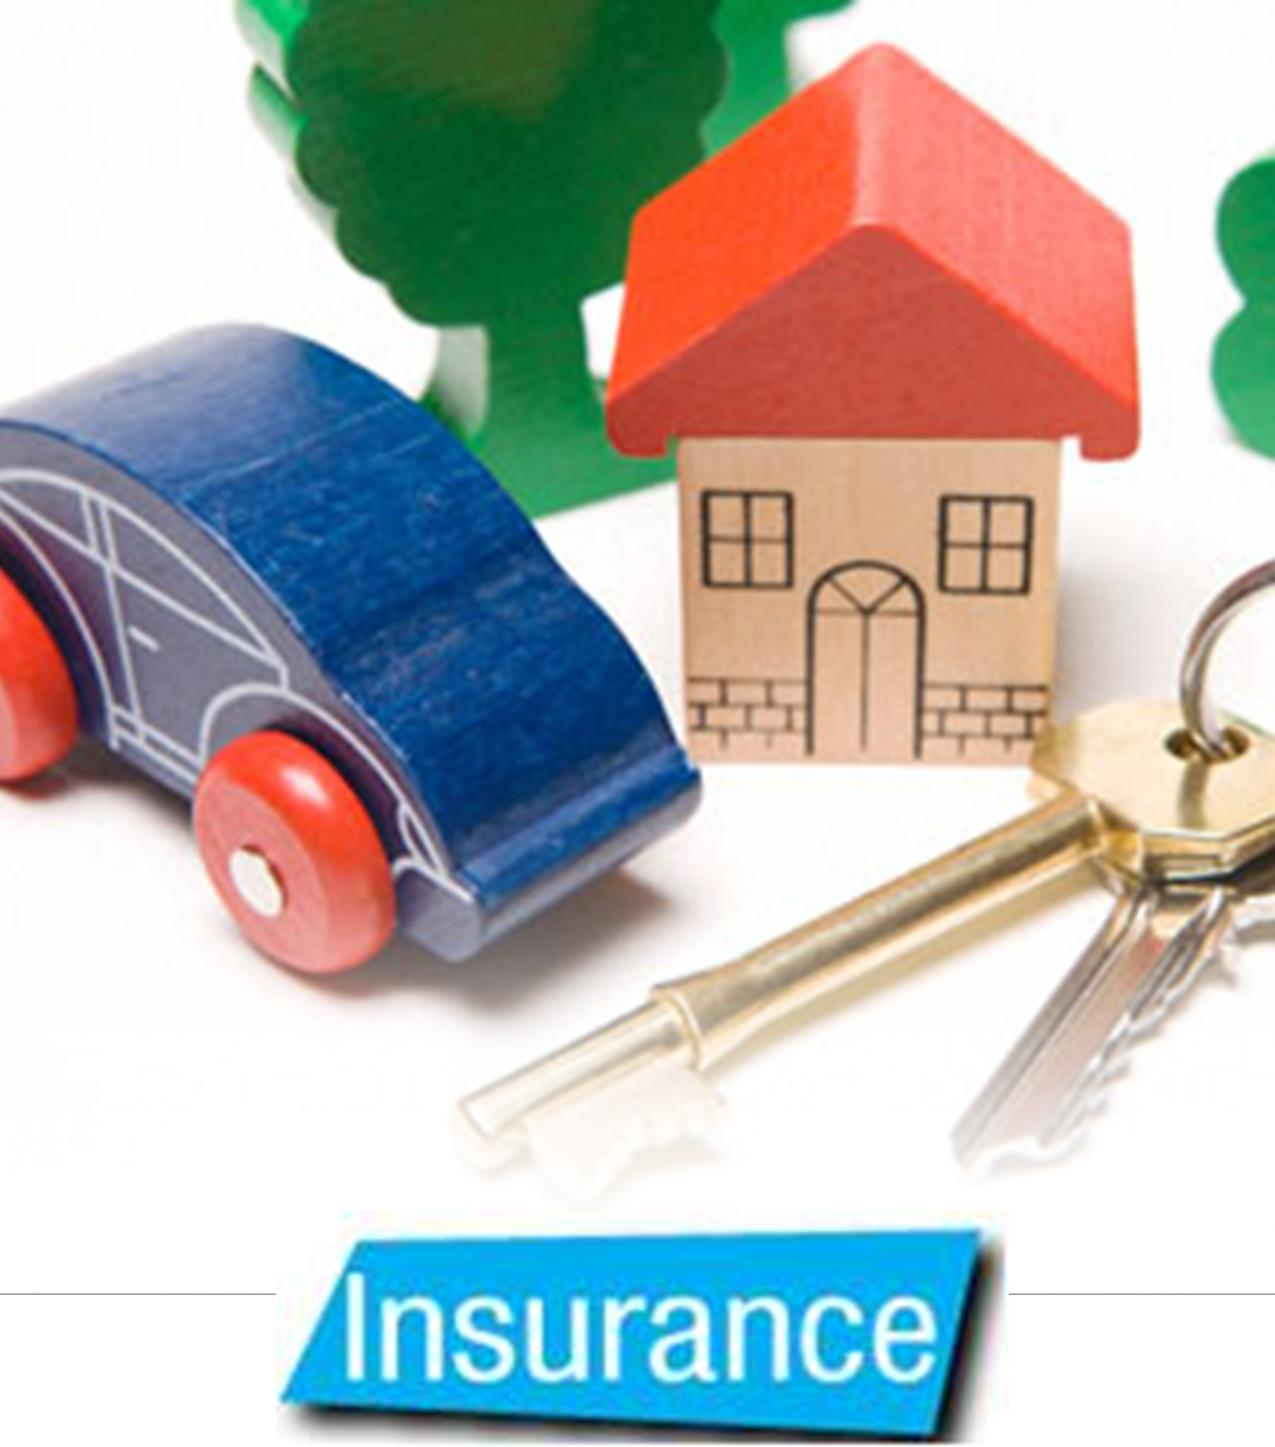 insurance, as it provides comprehensive coverage. The standardized